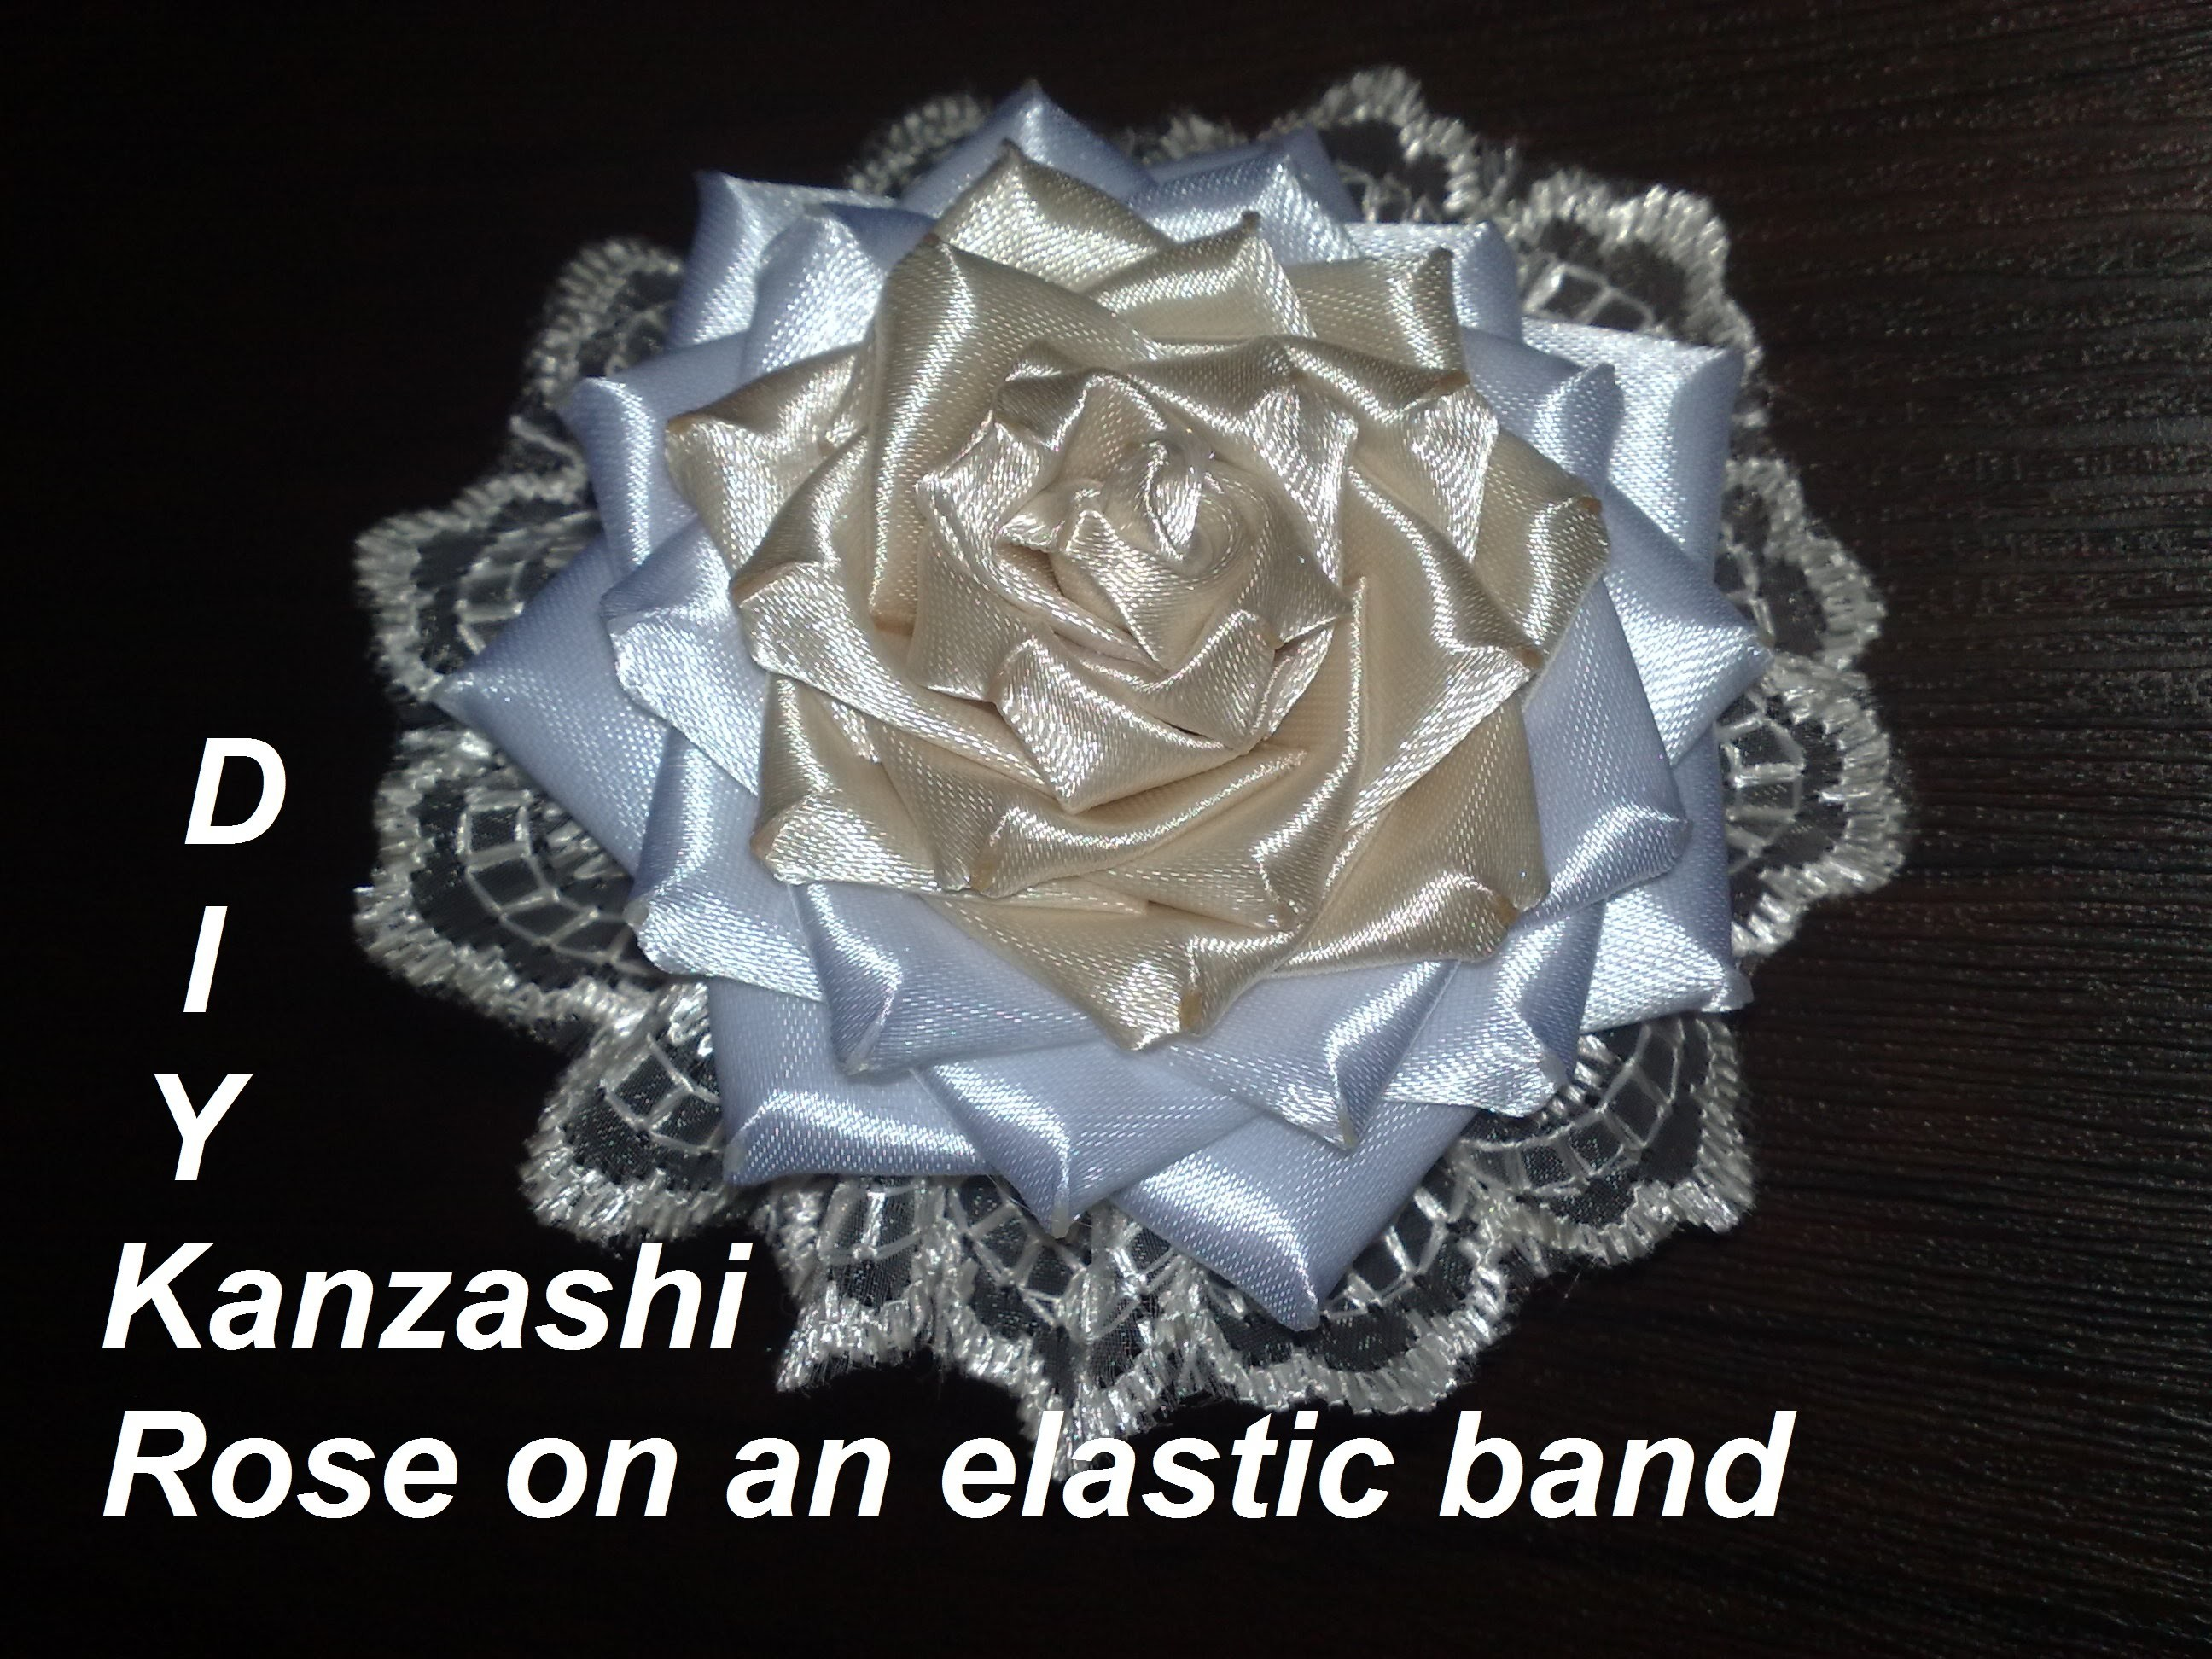 DIY Kanzashi Rose on an elastic band - Роза на резинке. Мастер-класс.